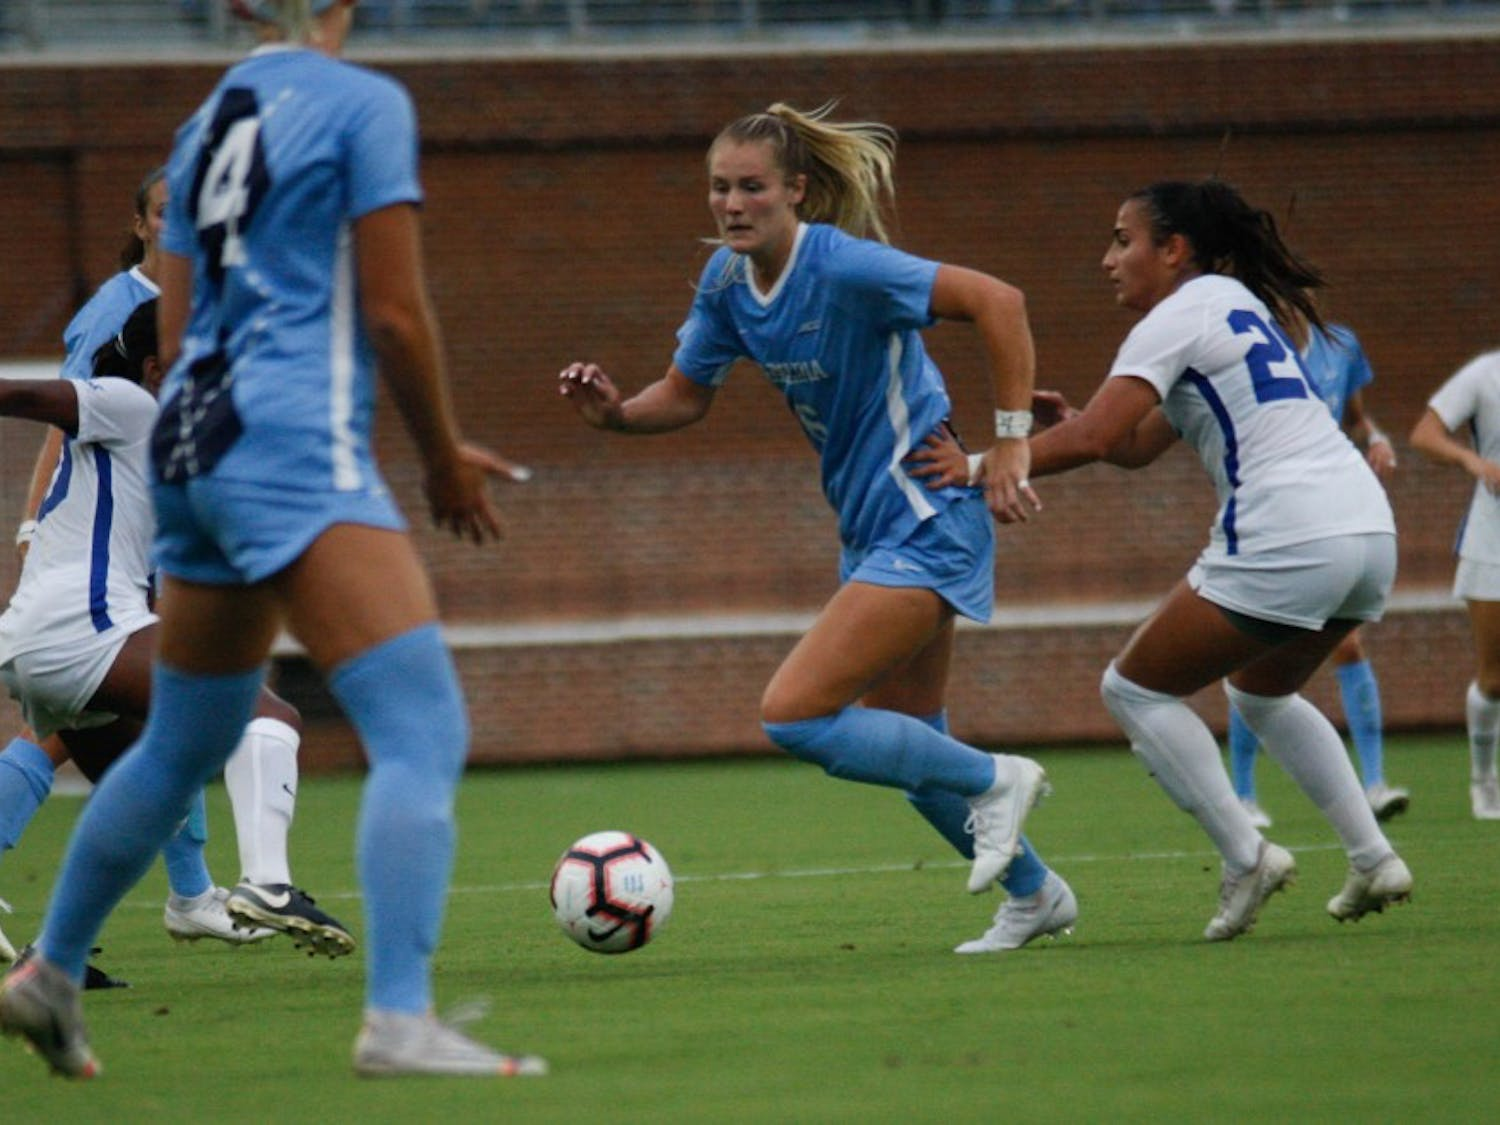 UNC women's soccer took on the Duke Blue Devils at home on Sunday August 25, 2019. UNC lead the game offensively and won 2-0.